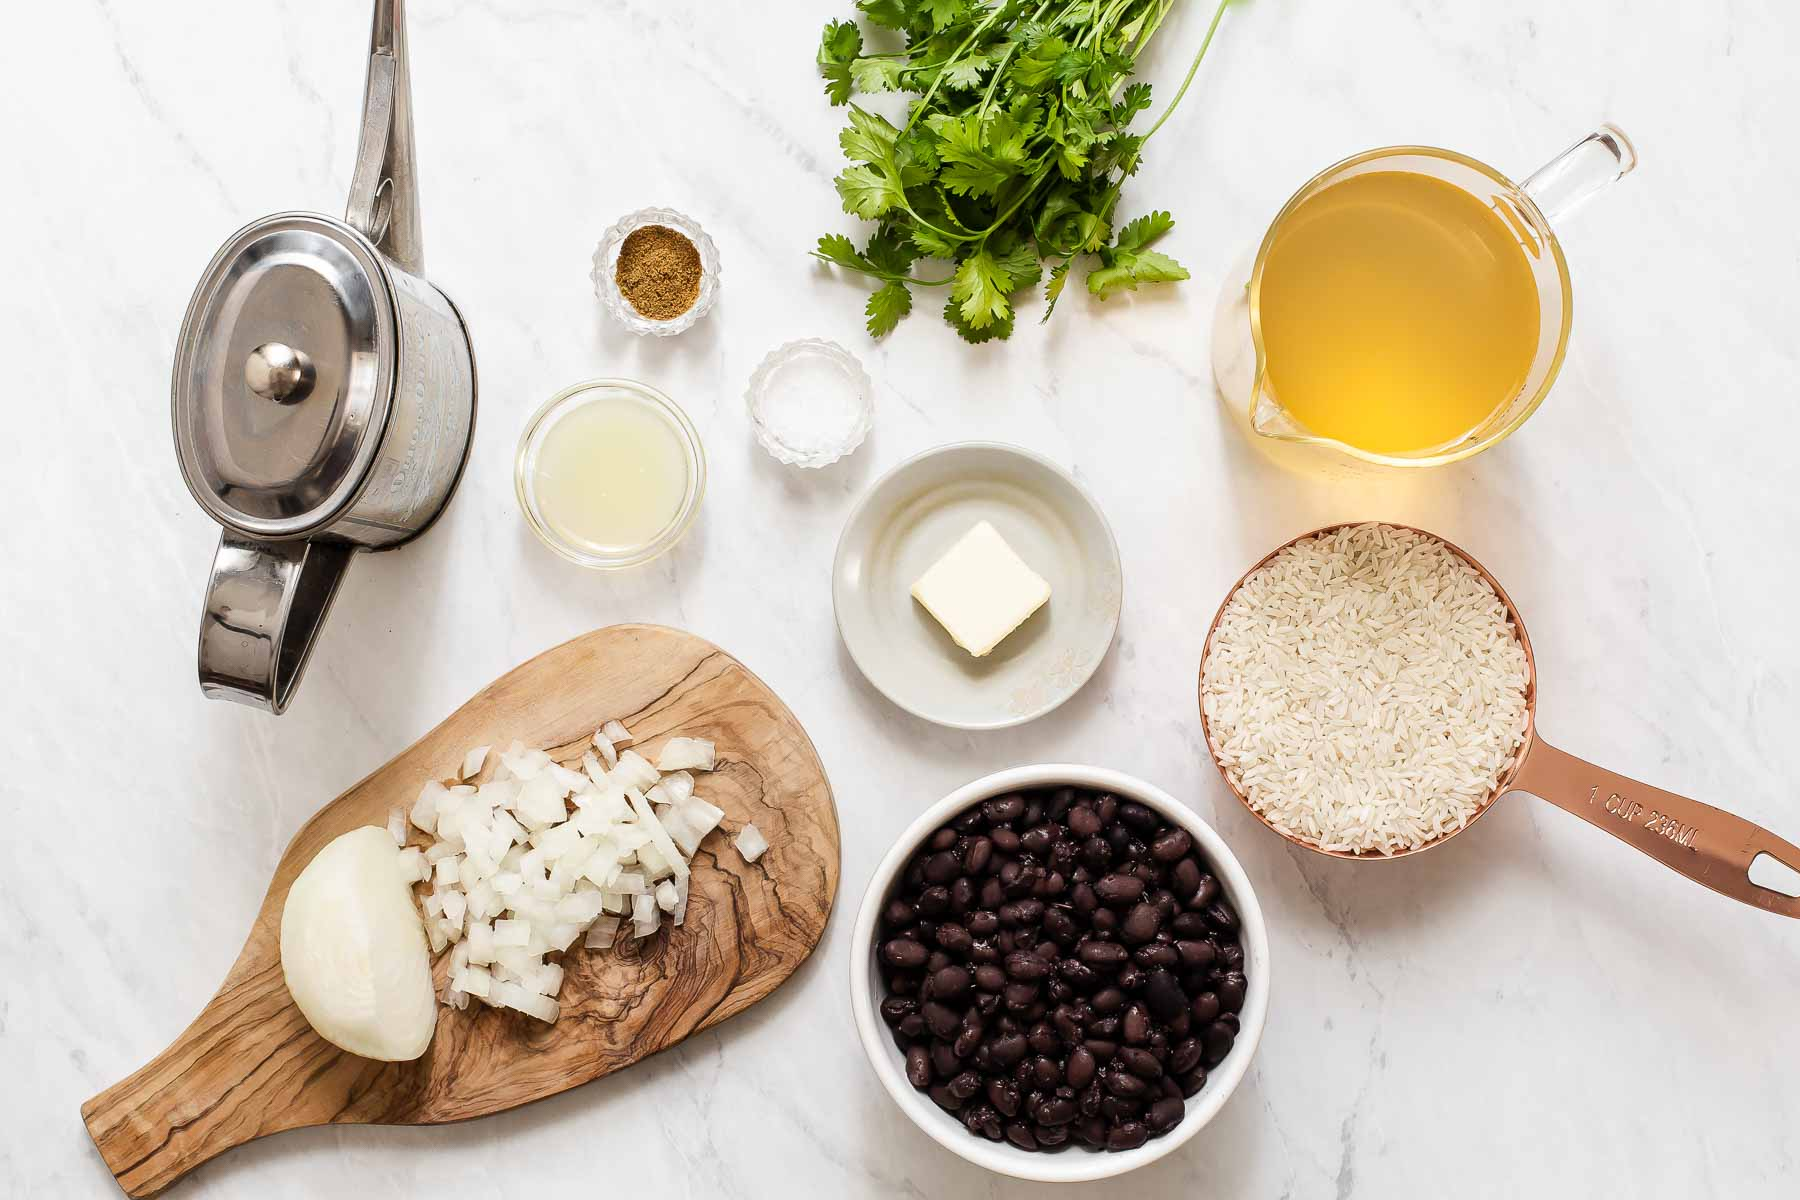 Ingredients for black beans and rice on white table.